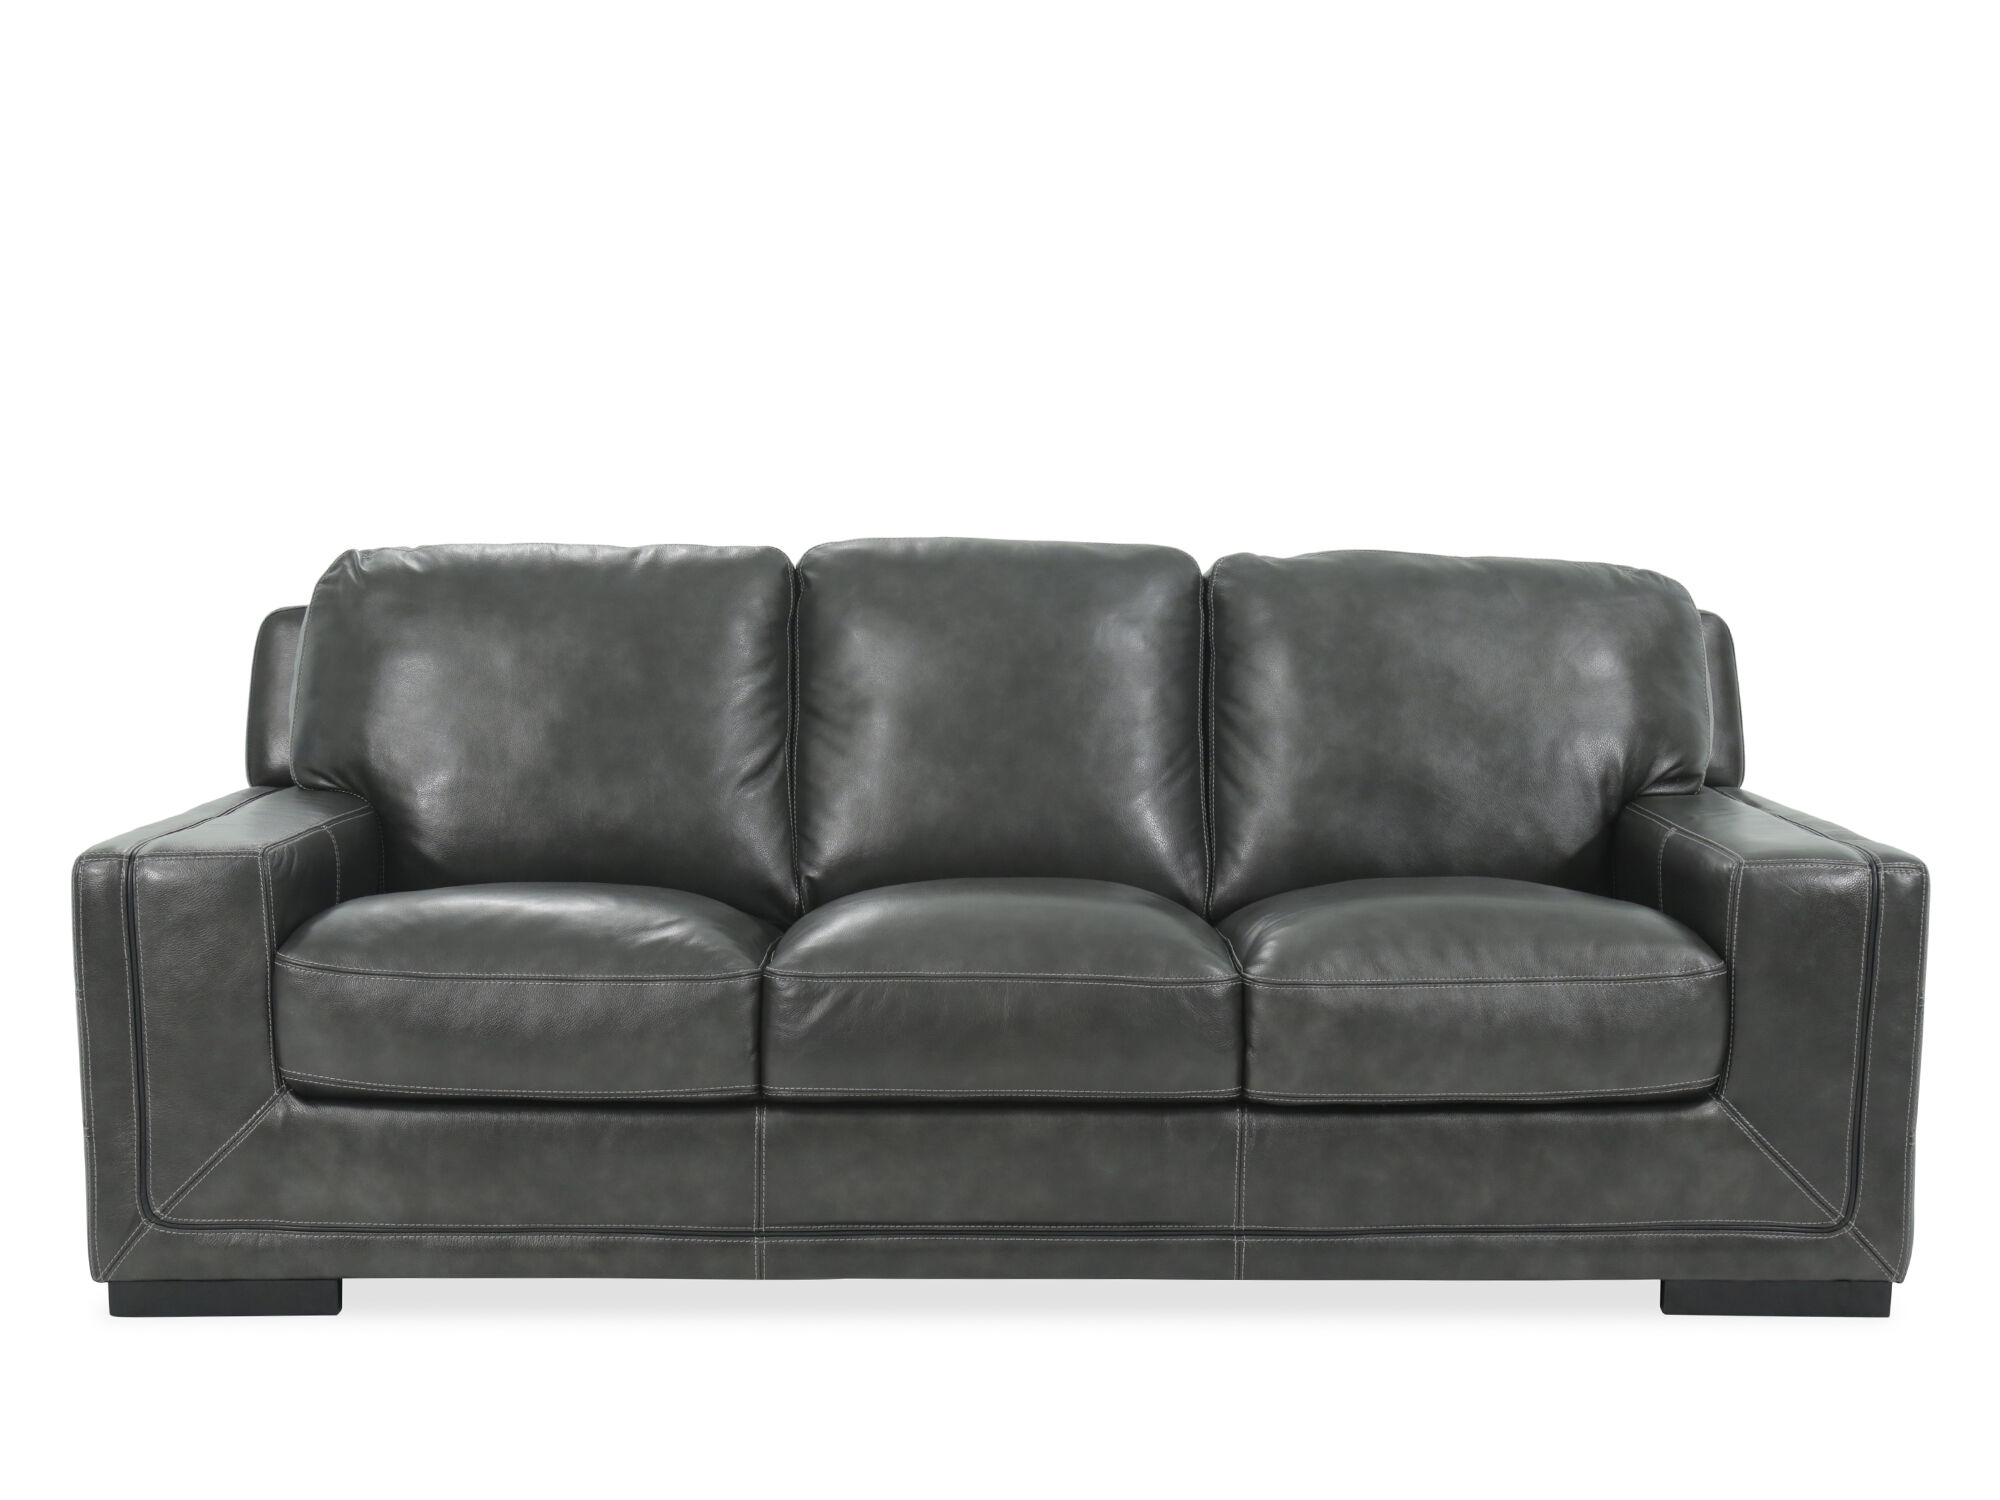 pewter sofa bed style of vegas raymour and flanigan revistapacheco